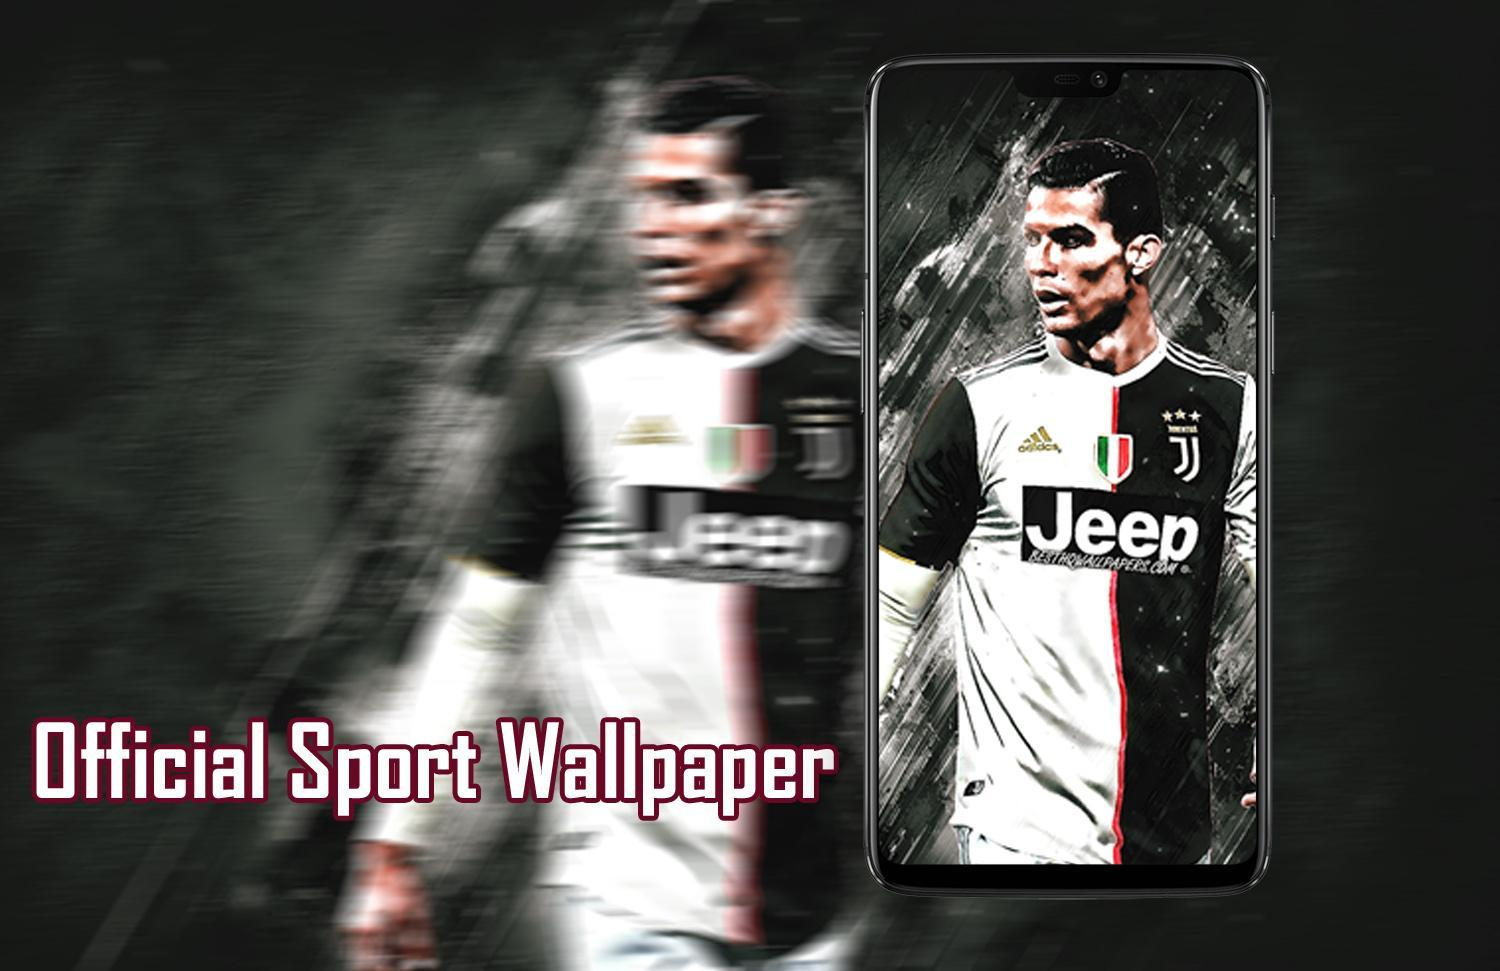 Cristiano Cr7 Wallpaper 2020 HD for Android   APK Download 1500x971